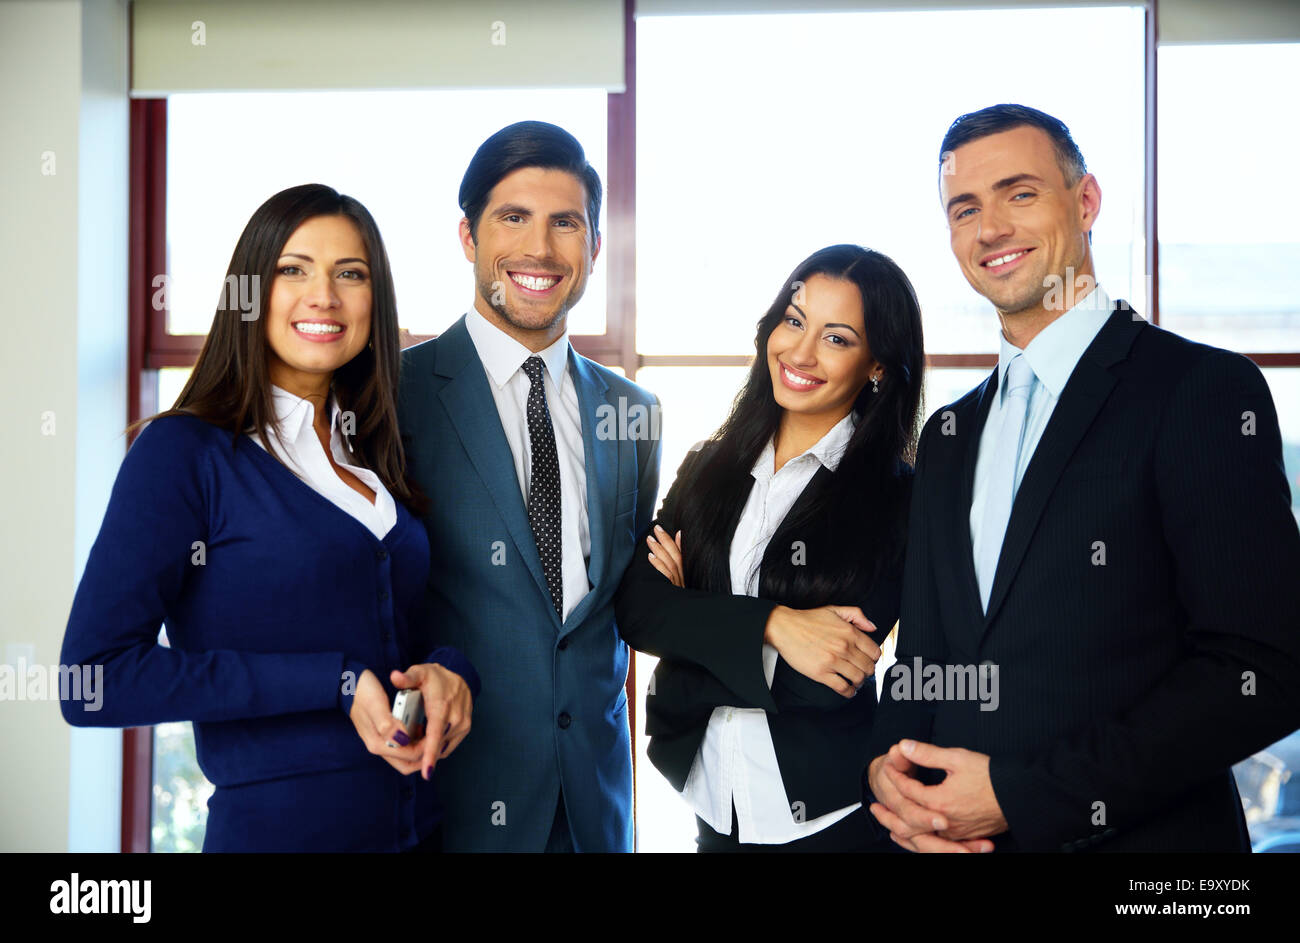 Group of cheerful business people standing in office - Stock Image